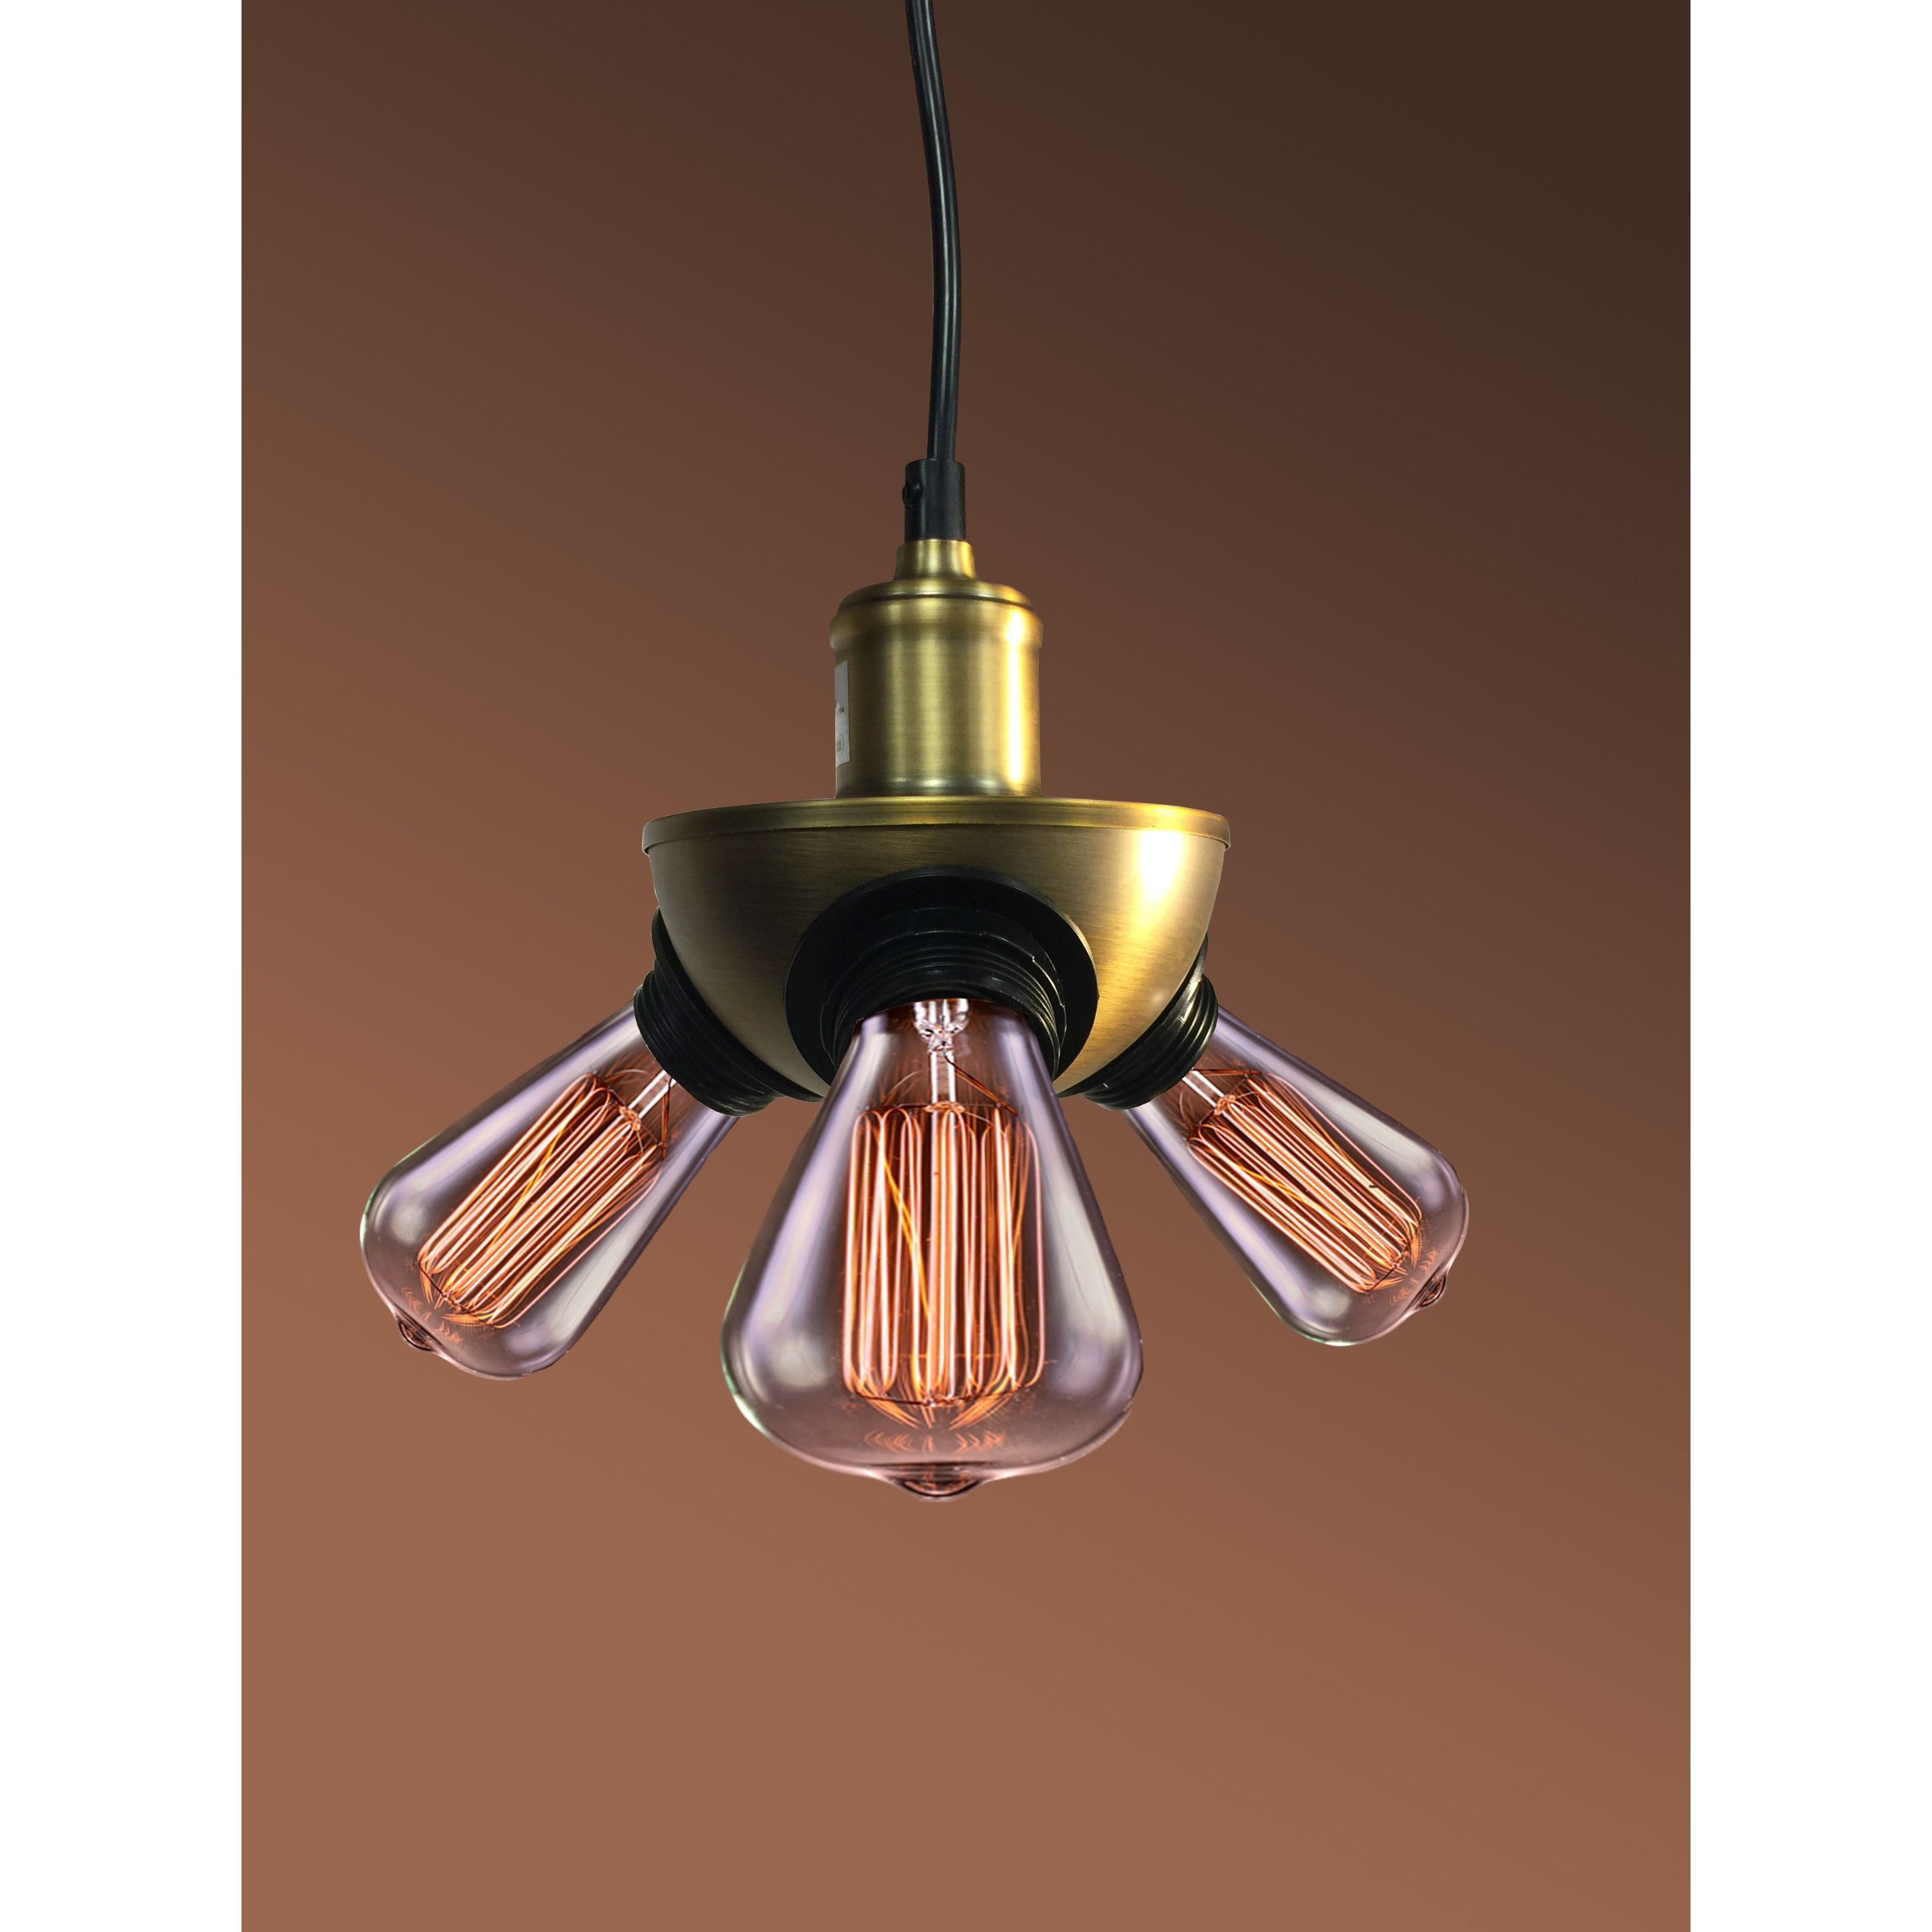 Get creative with our new line of Edison lighting fixtures. This ...